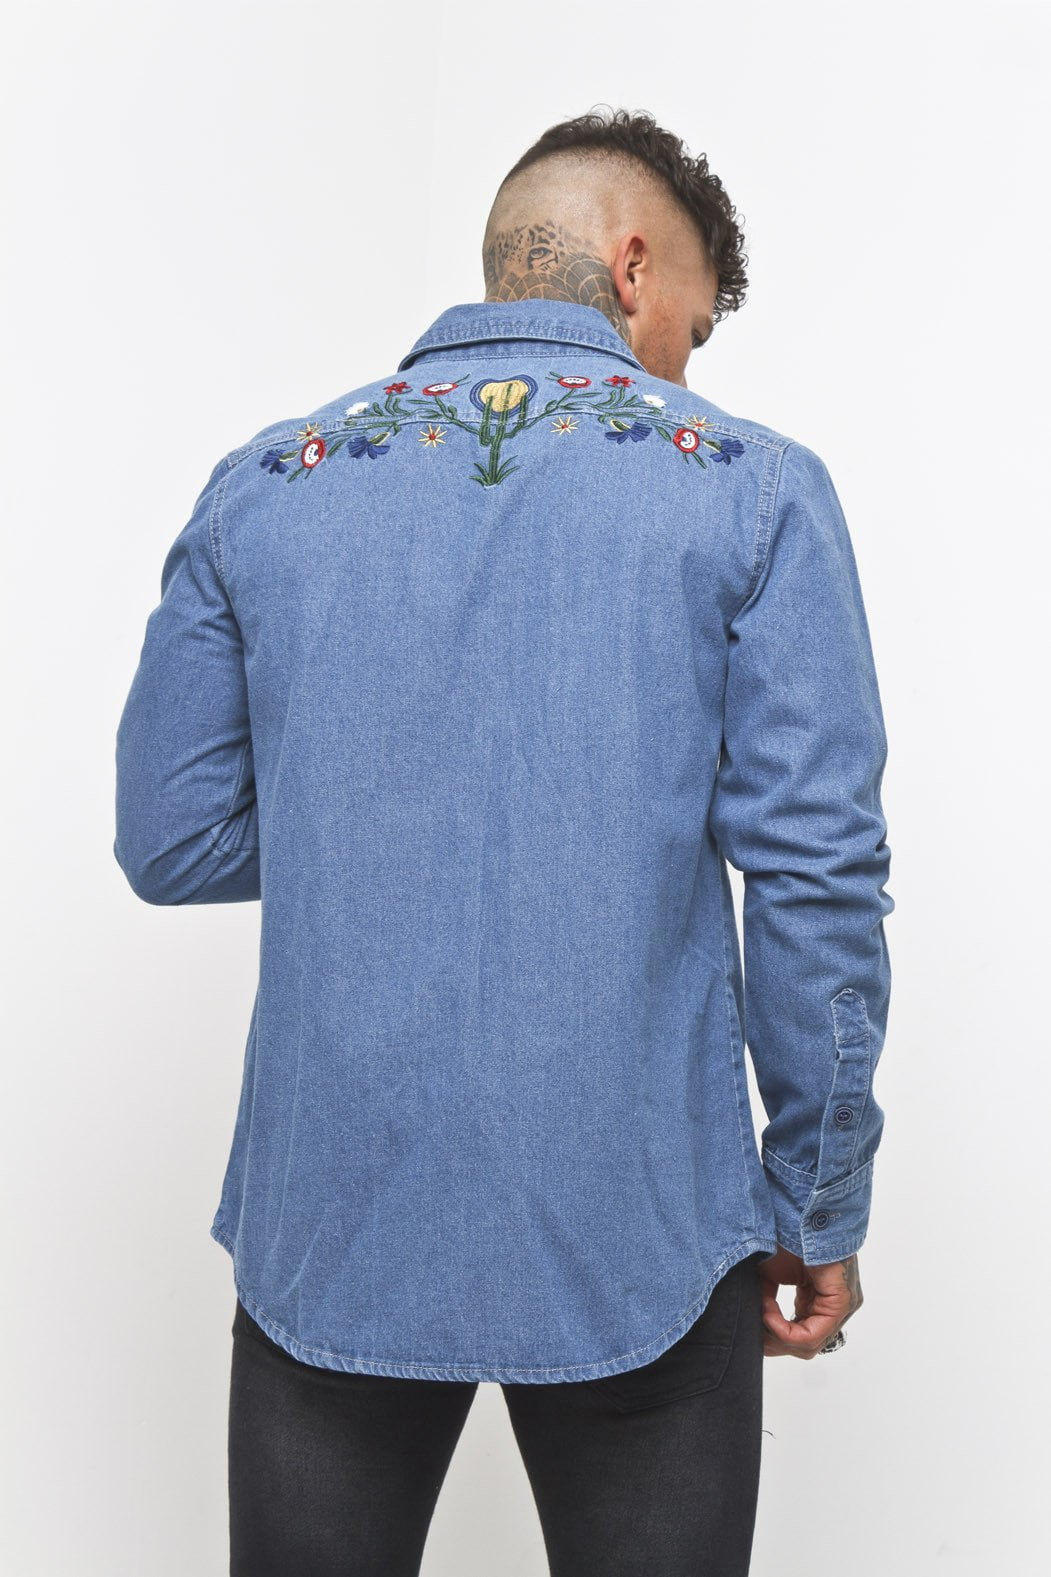 Liquor n Poker - Embroidered Denim Cactus Shirt - Liquor N Poker  Liquor N Poker